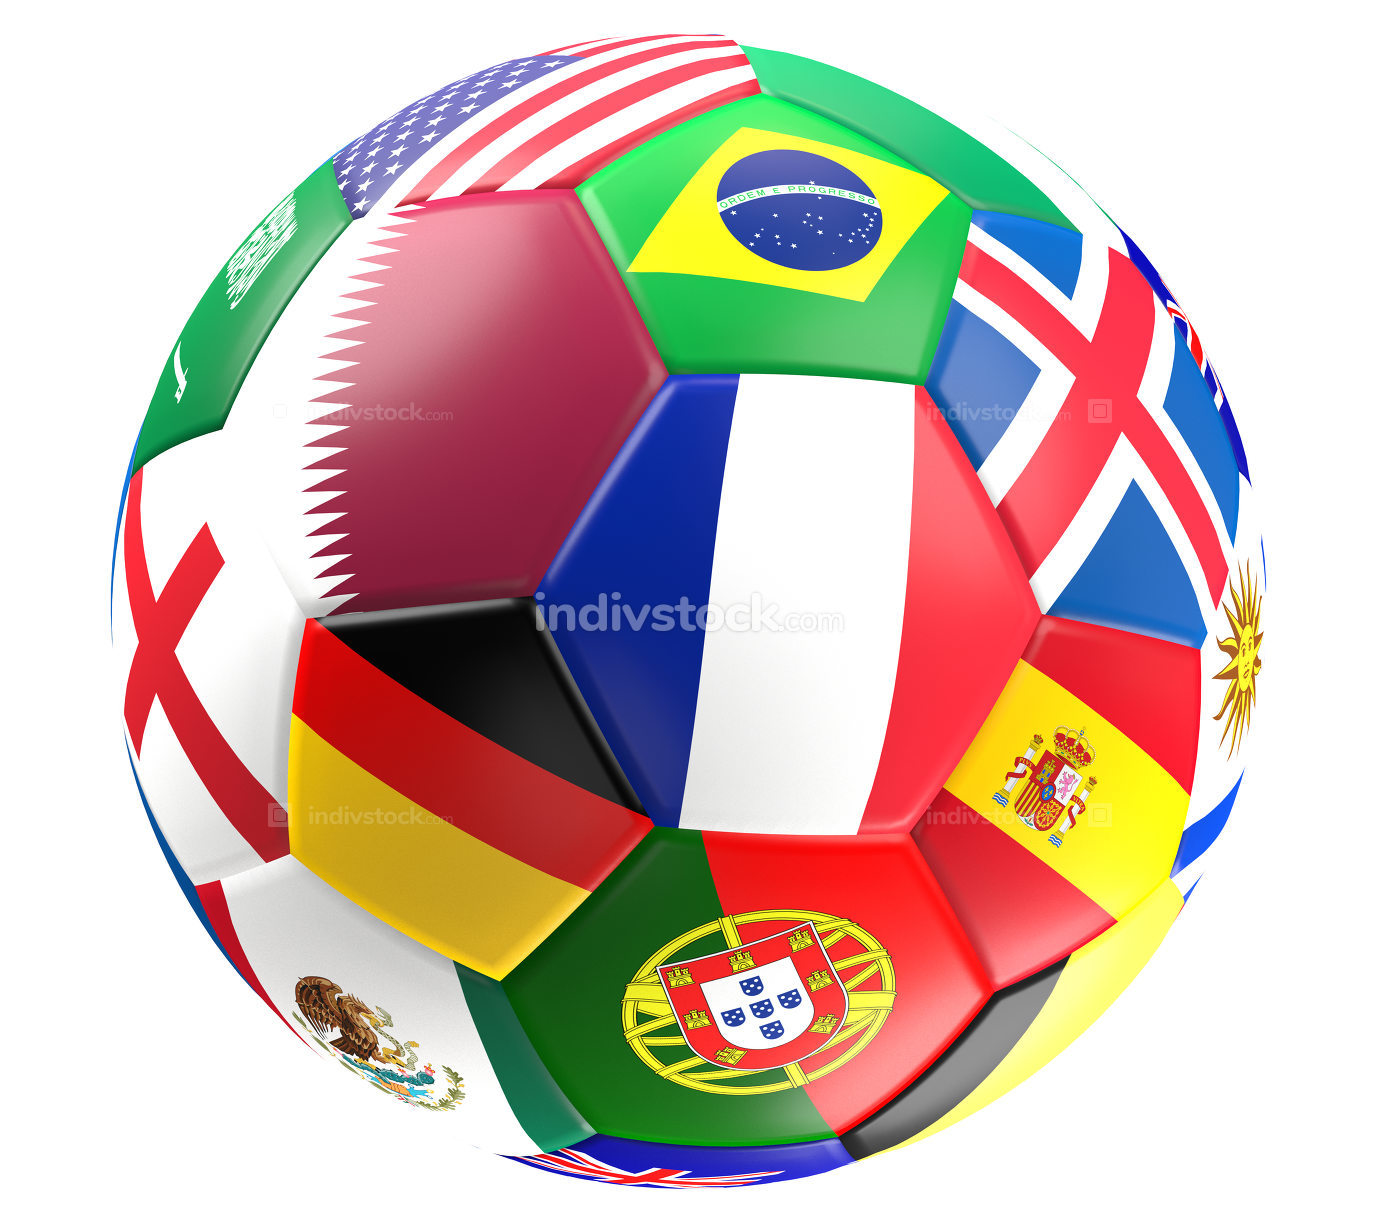 free download: Qatar and France and more flags design soccer ball isolated 3d r